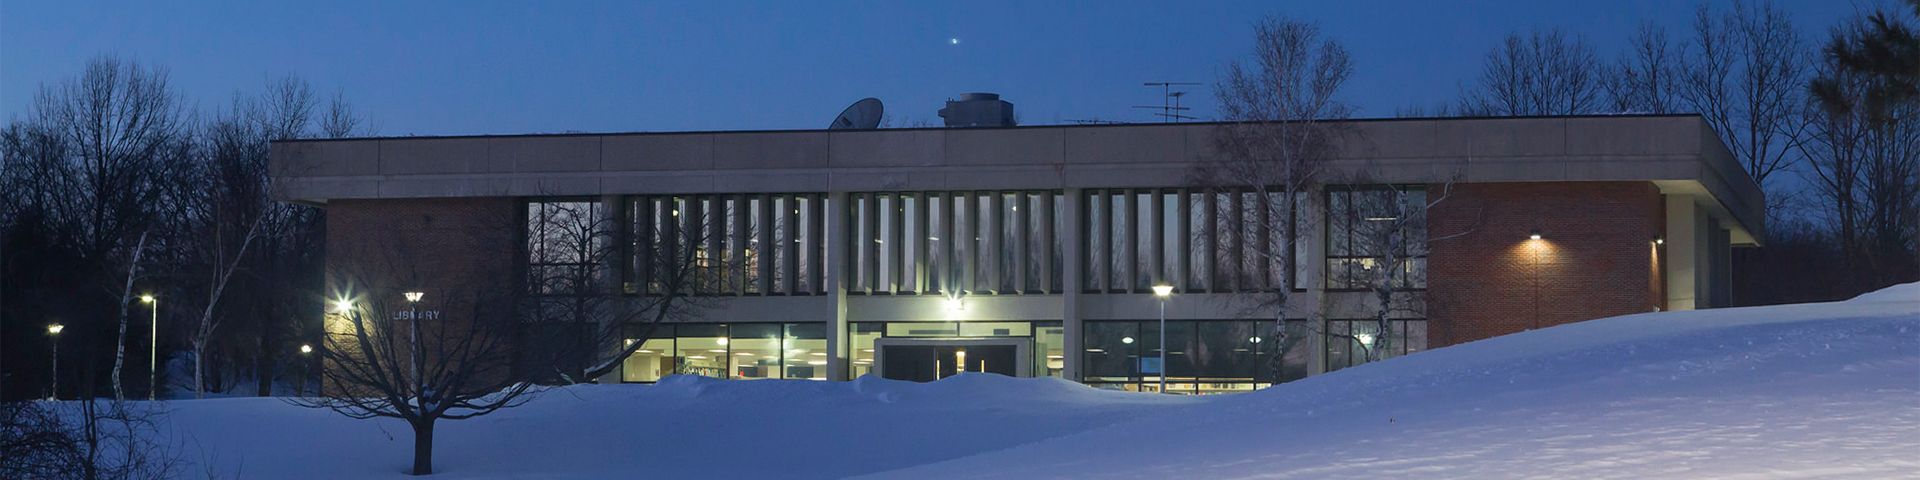 NECC Library pictured at night, buried in the snow